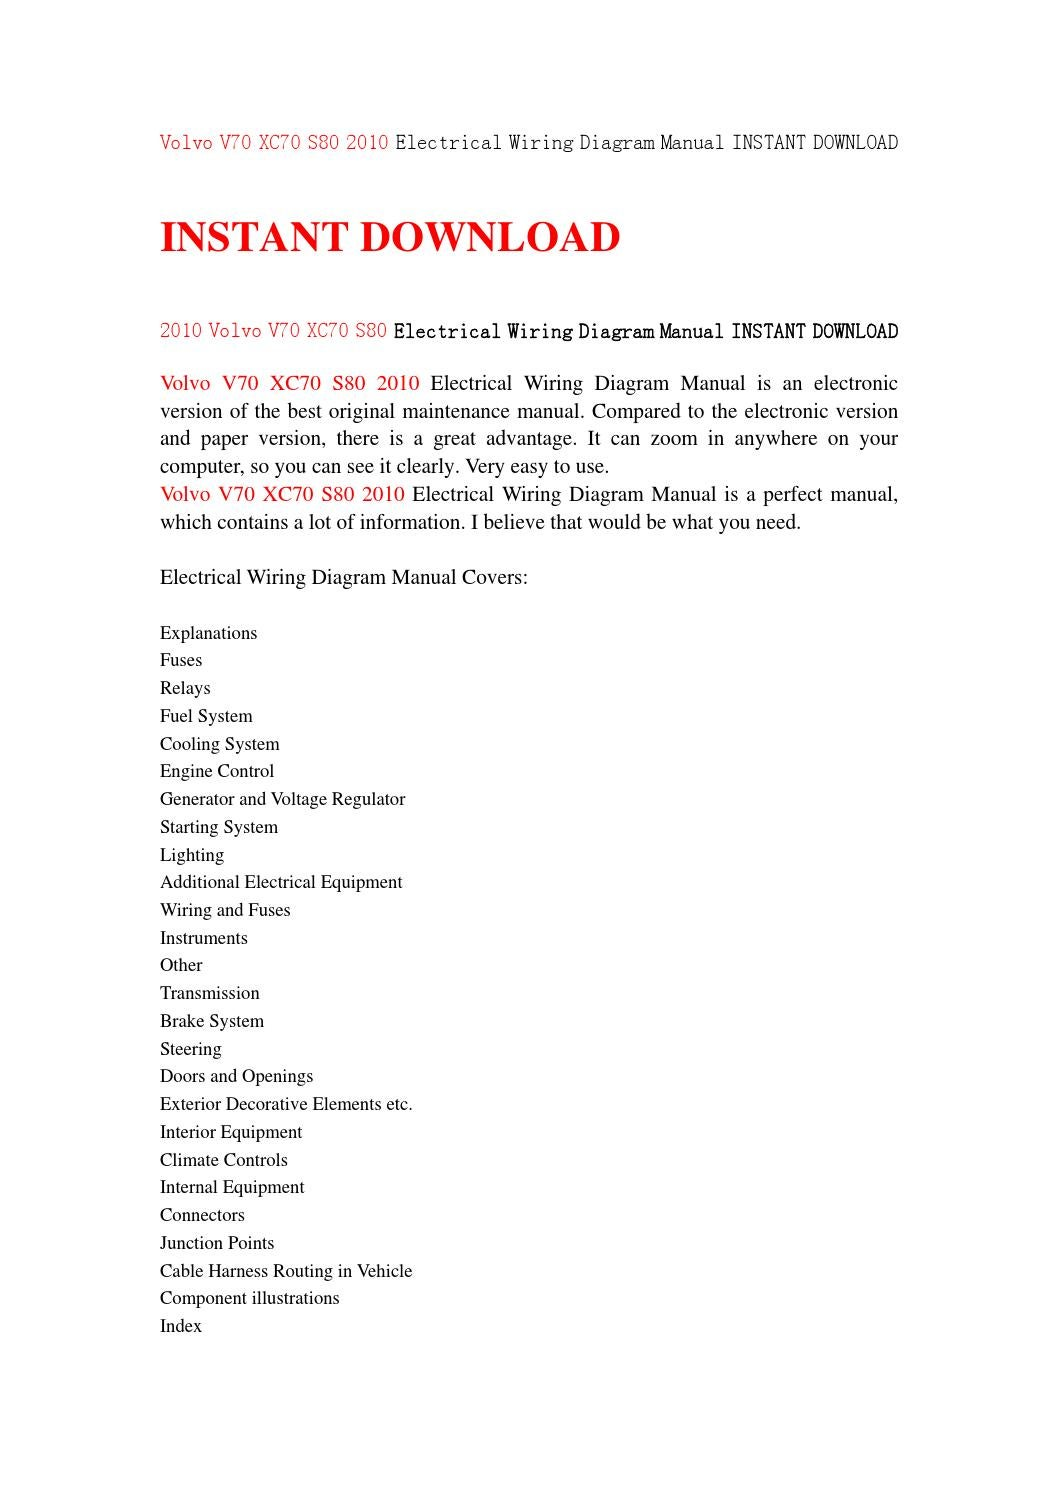 volvo v70 xc70 s80 2010 electrical wiring diagram manual instant download  by kksjenfhsejn - issuu